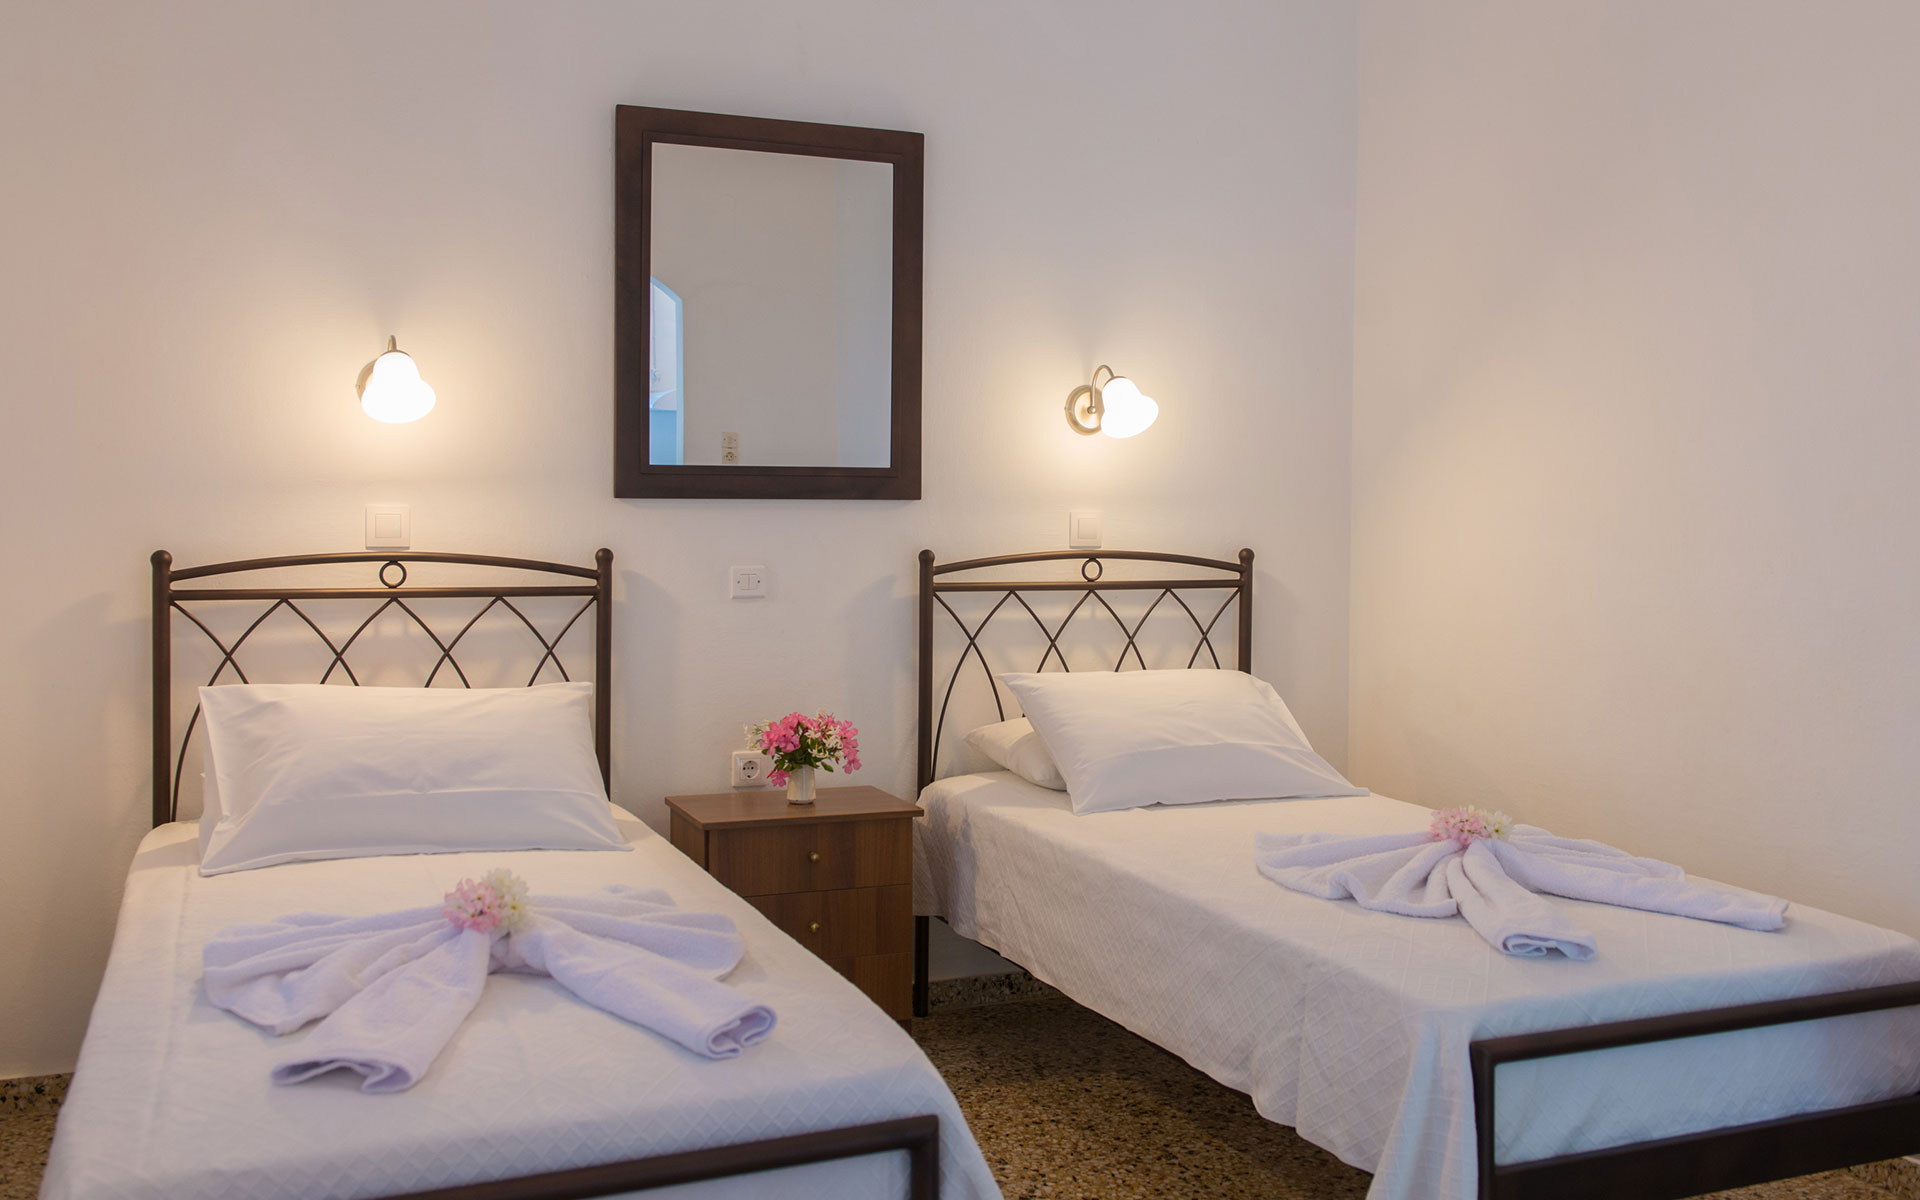 Double room in Roubina accommodation in Sifnos